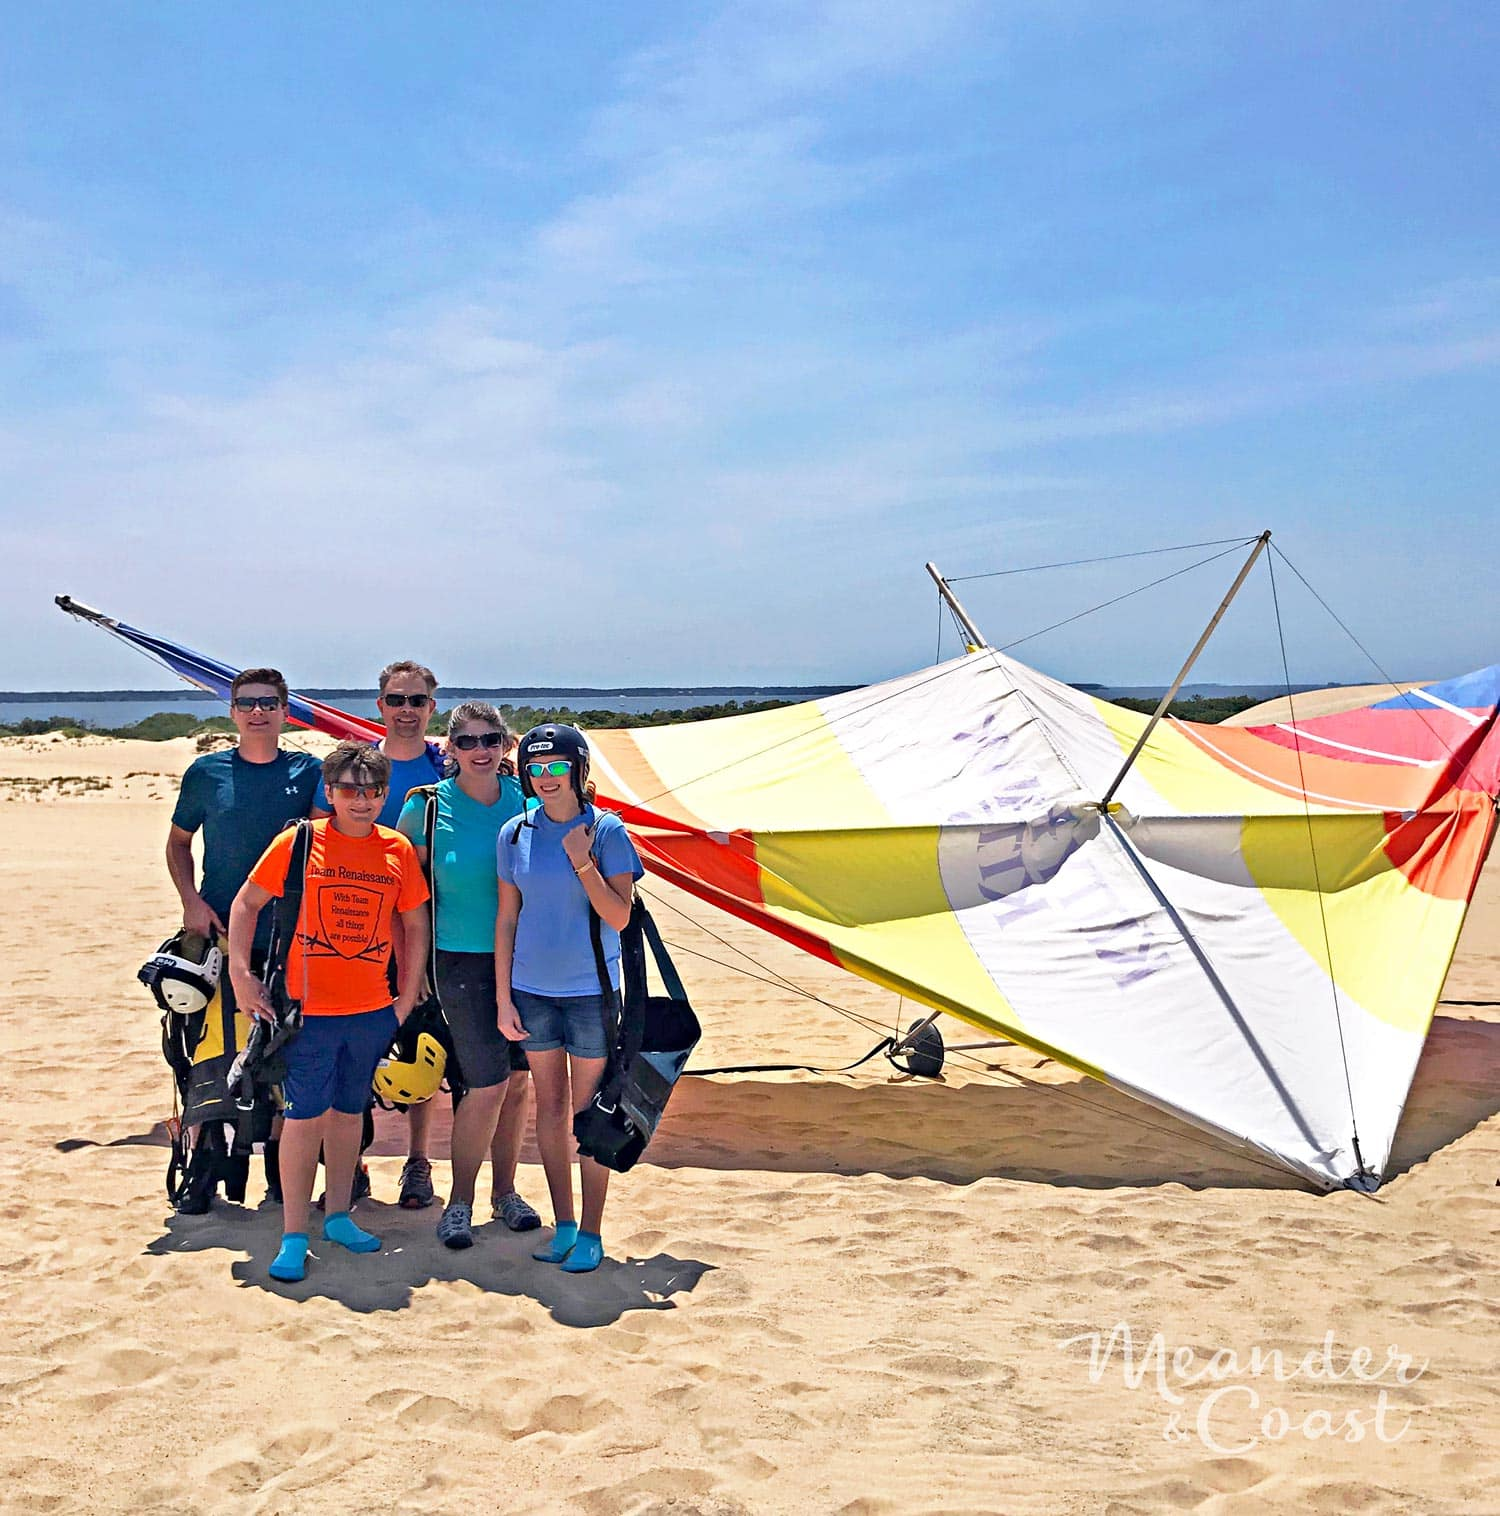 This looks like an amazing adventure! Outer Banks hang gliding lesson at Jockey's Ridge State Park, NC. | Meander & Coast #hanggliding #dunehanggliding #hangglidinglessons #flyinglessons #outerbanks #nagshead #kittyhawk #northcarolina #familyvacation #travel #adventure #teentravel #familytravel